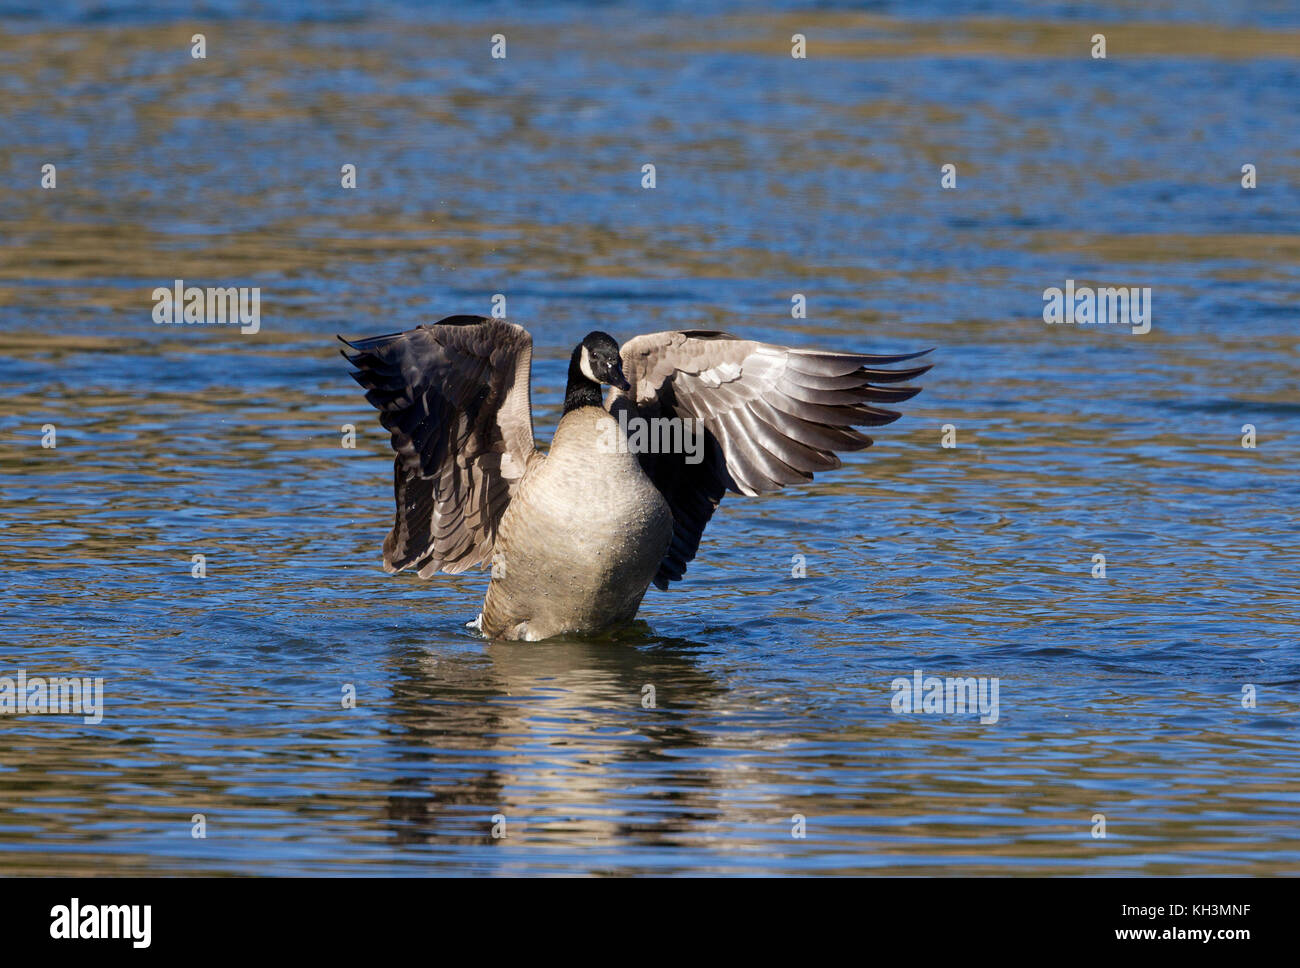 Canada Goose Flapping - Stock Image